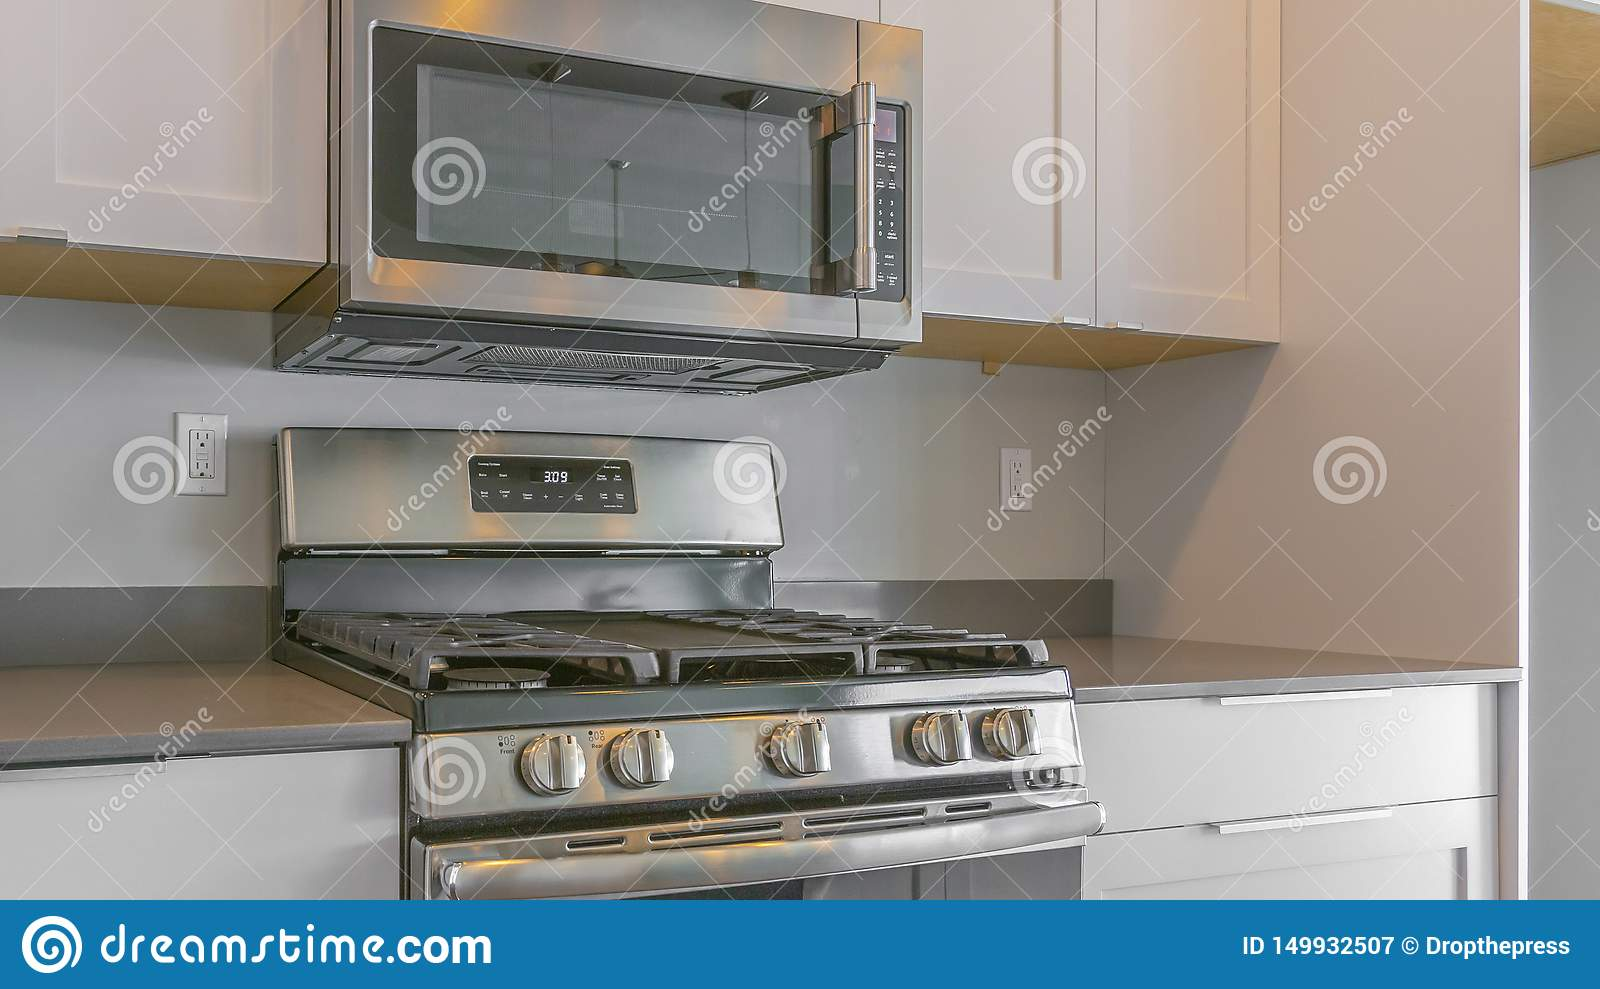 https www dreamstime com panorama cooking range wall mounted microwave inside modern kitchen white wooden cabinets built s light gray image149932507